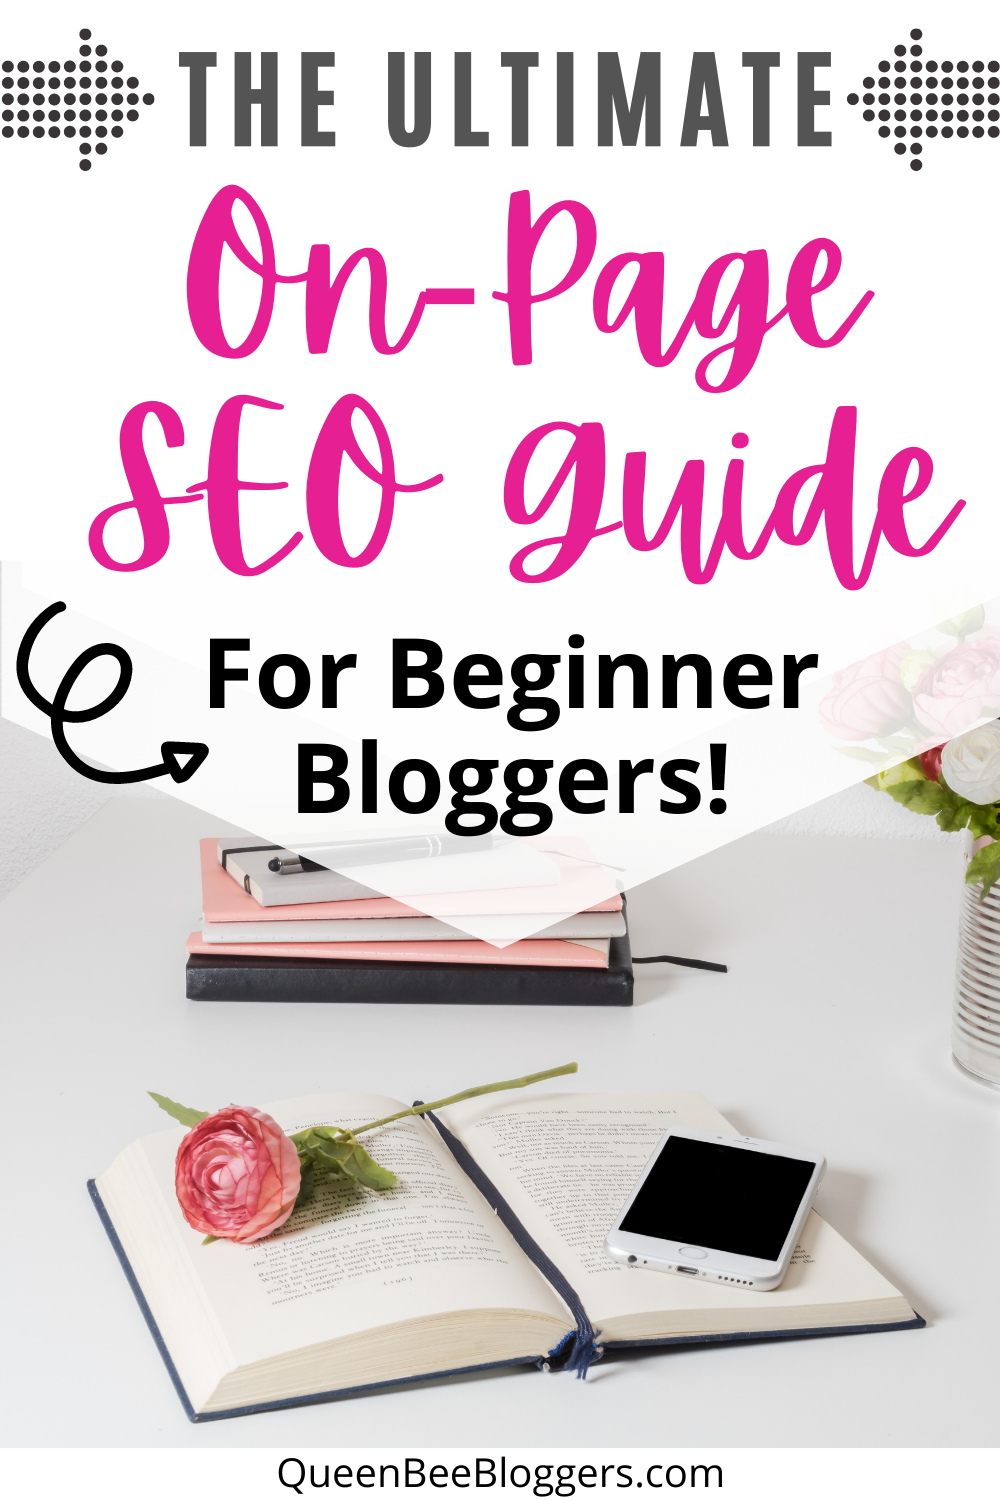 content optimization by Marianna Di Regolo   The Fringe   Business & Blogging Tips